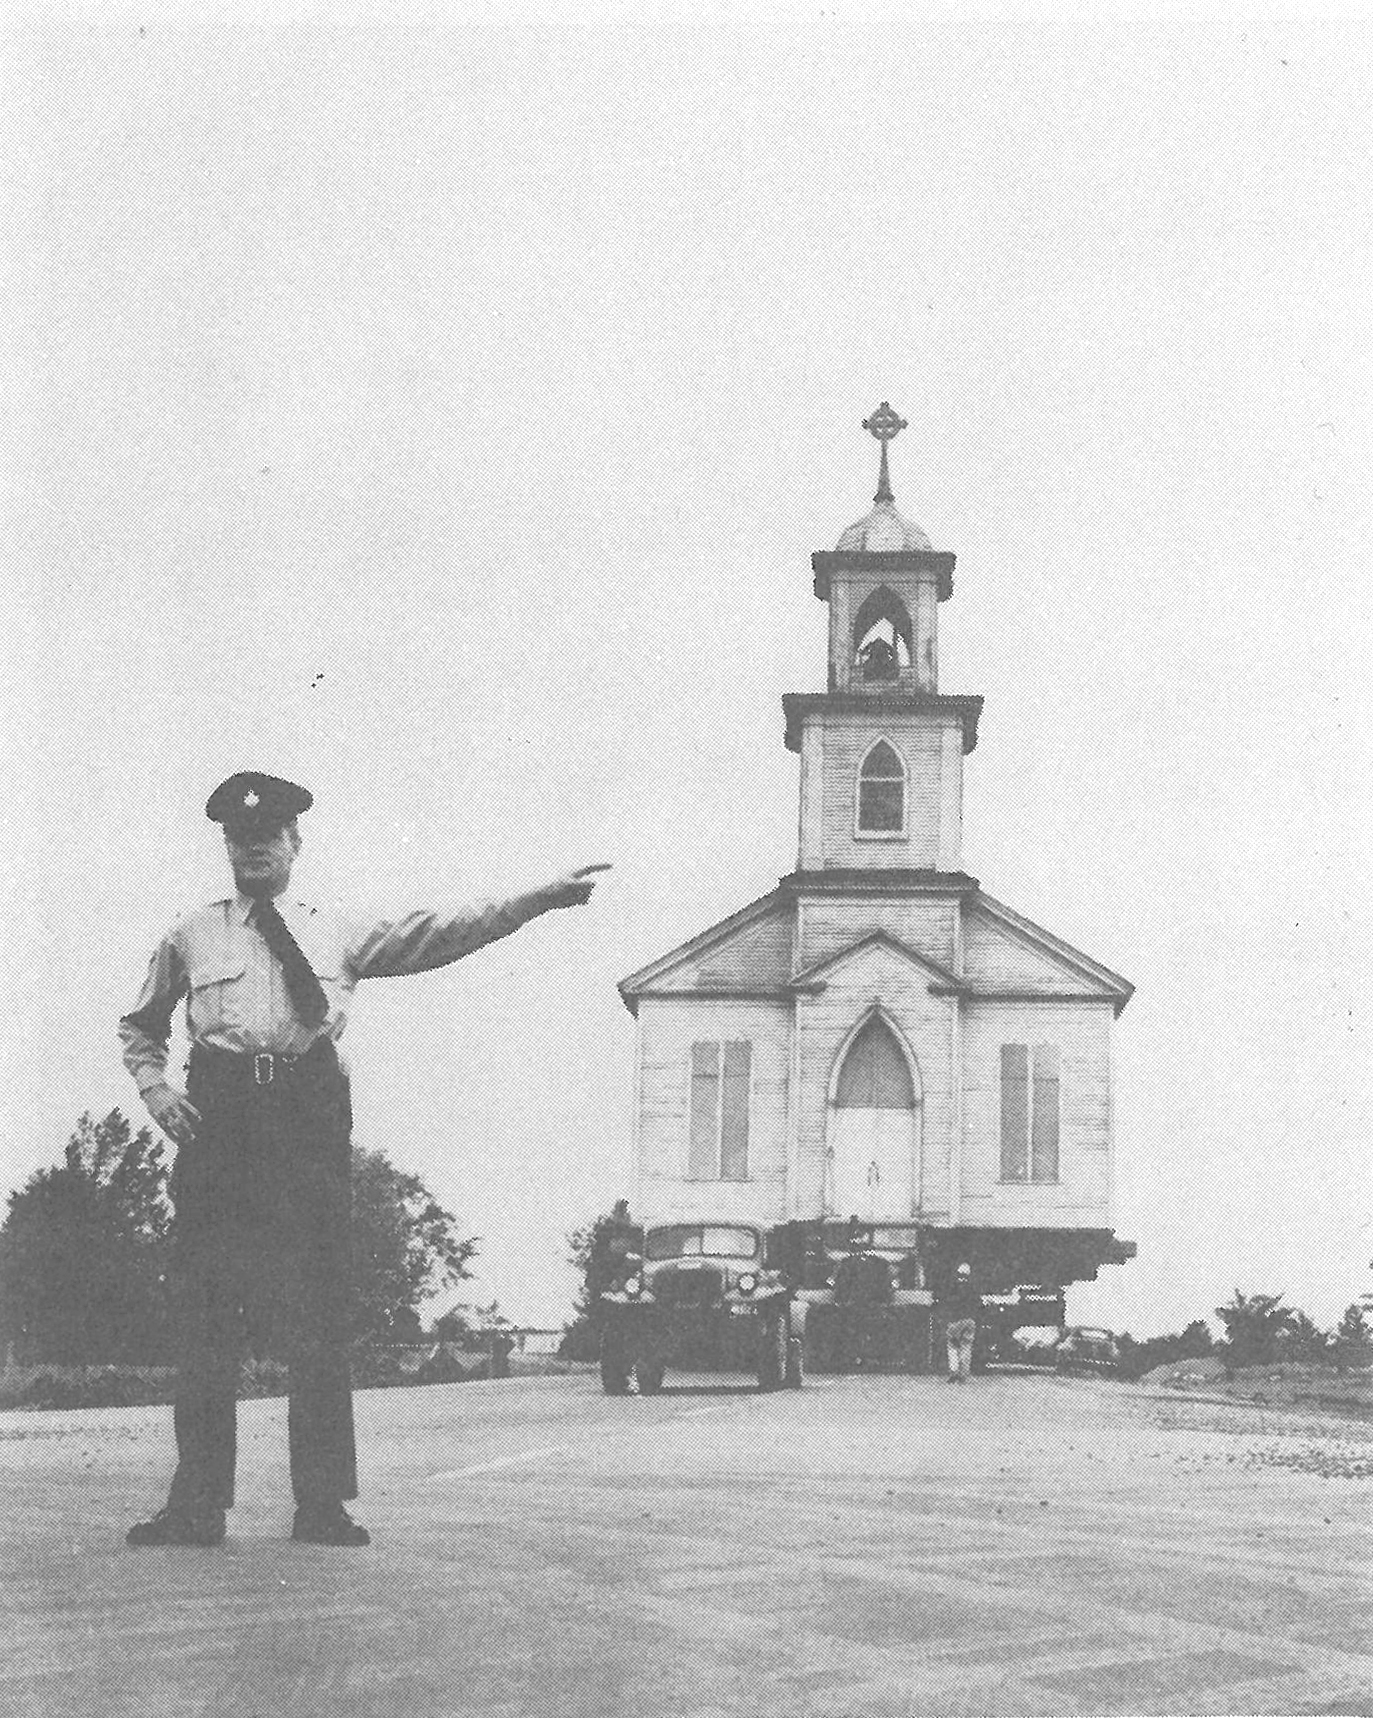 Christ Church Anglican, Moulinette, en route to Upper Canada Village. Credit: Ontario Hydro Archives